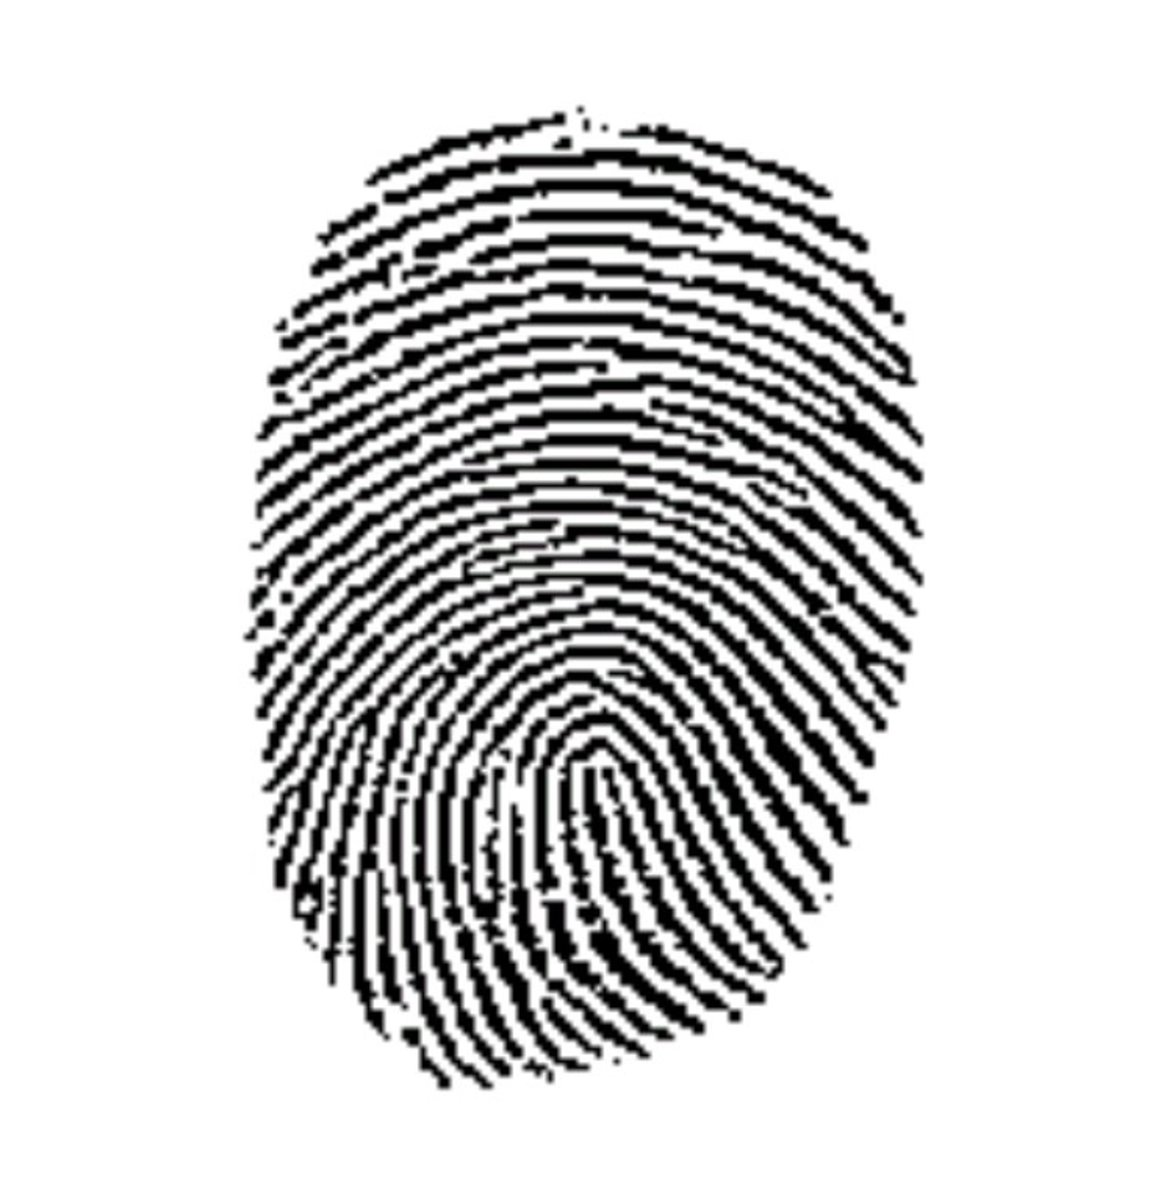 What does your fingerprint mean?